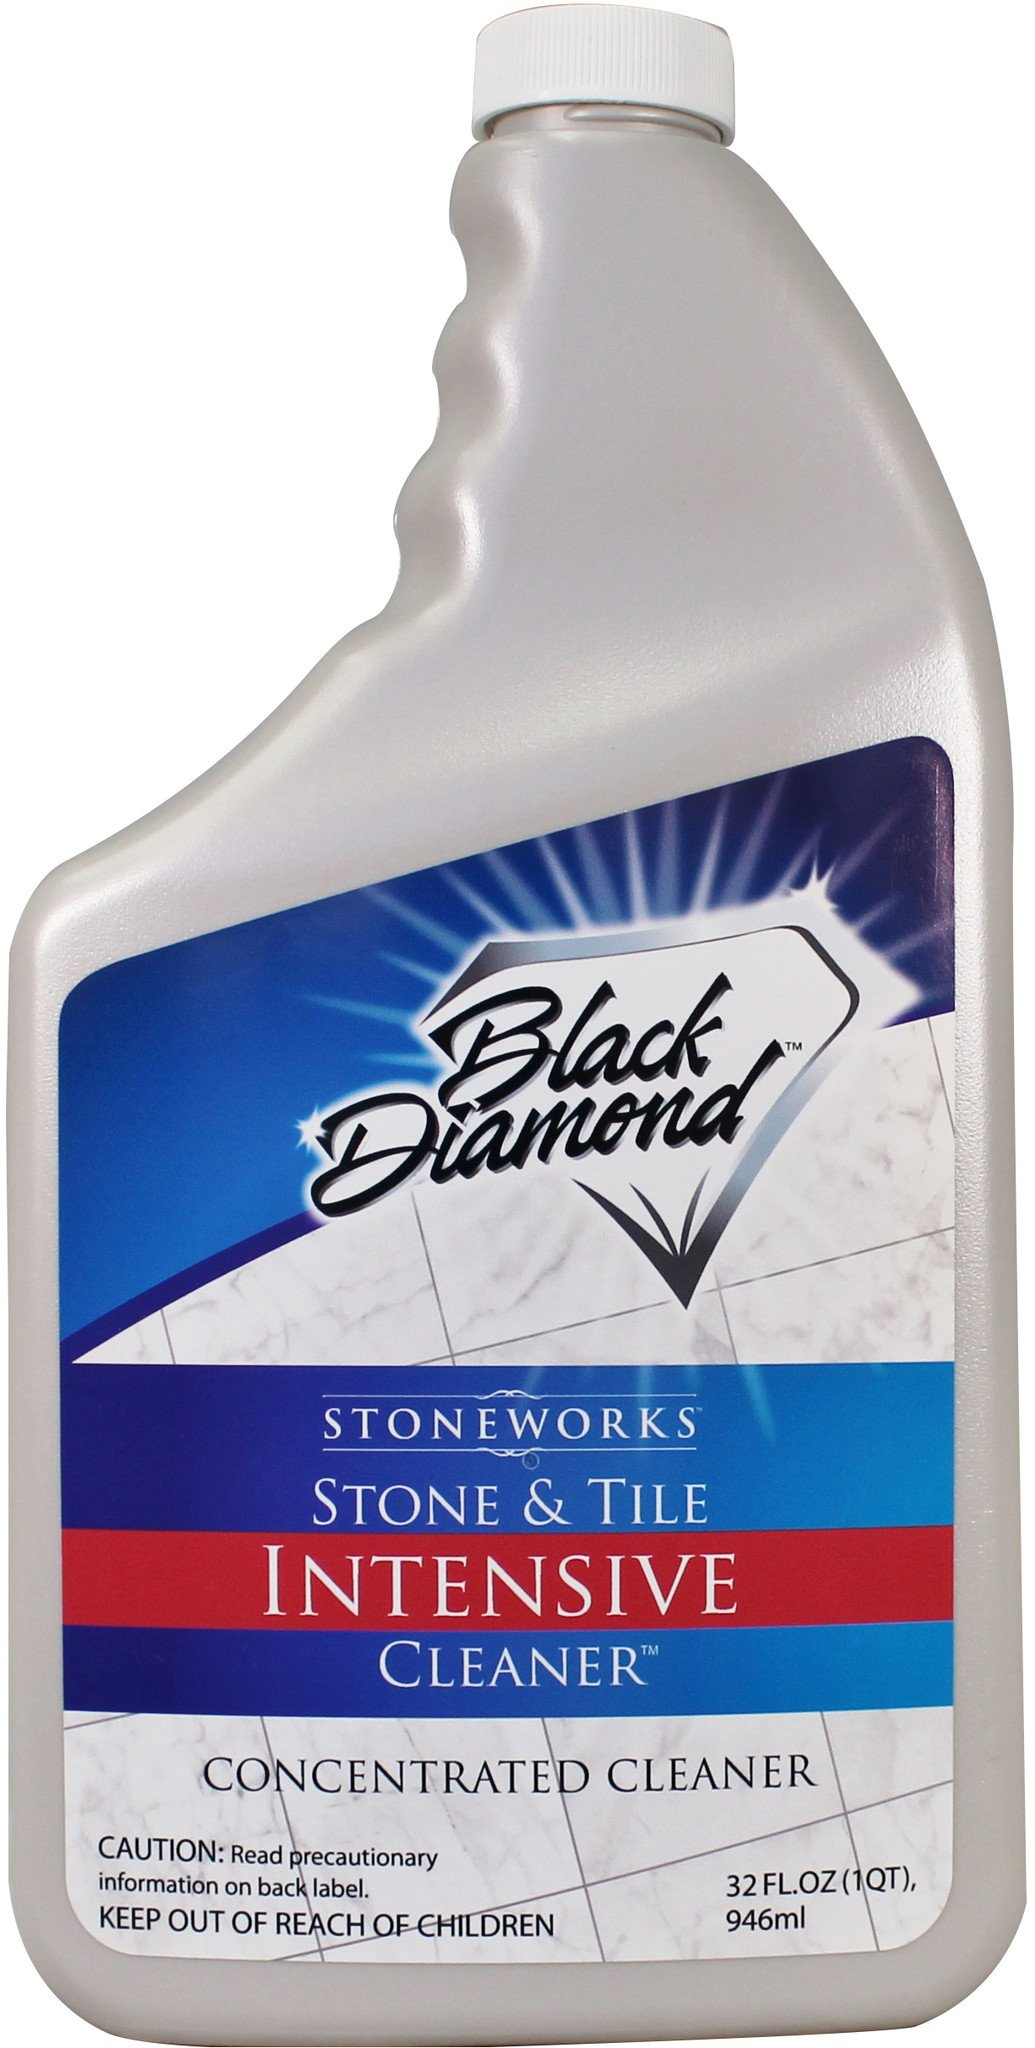 stone and tile intensive cleaner concentrated deep cleaner marble limestone travertine granite slate ceramic porcelain tile black diamond